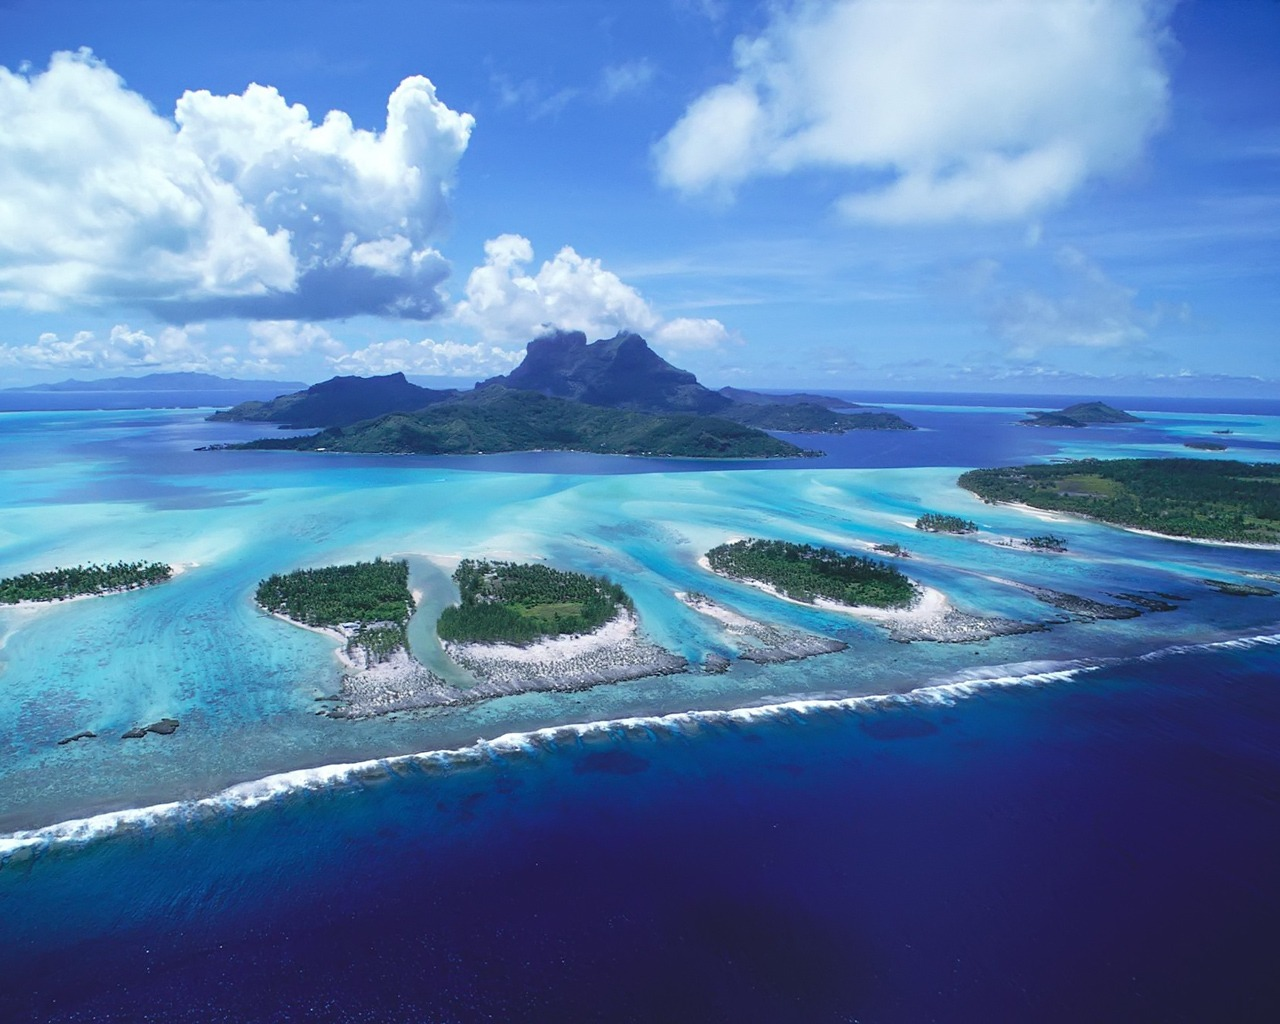 Bora Bora, The Romantic Island  Under a one hour flight from the island of Tahiti or Moorea, the island of Bora Bora, with a lagoon resembling an artist's palette of blues and greens, is love at first sight. Romantics from around the world have laid claim to this island where the castle-like Mount Otemanu pierces the sky. Lush tropical slopes and valleys blossom with hibiscus, while palm-covered motu circle the illuminated lagoon like a delicate necklace. Perfect white-sand beaches give way to emerald waters where colored fish animate the coral gardens as they greet the giant manta rays. This could be easily be described as the center of the romantic universe, where luxury resorts and spas dot the island with overwater bungalows, thatchedroof villas, and fabled ambience.   Romance on Bora Bora    Truly, the most romantic island in the world. From the dramatic scenery to the privacy and amenities of the overwater bungalows, everything in Bora Bora equals a 10 on the romance scale. Resorts have been welcoming couples for over 40 years and their special amenities have been fine tuned to perfection. From sunrise to sunset, each resort has designed their own blend of unique romantic experiences for their guests to choose from.